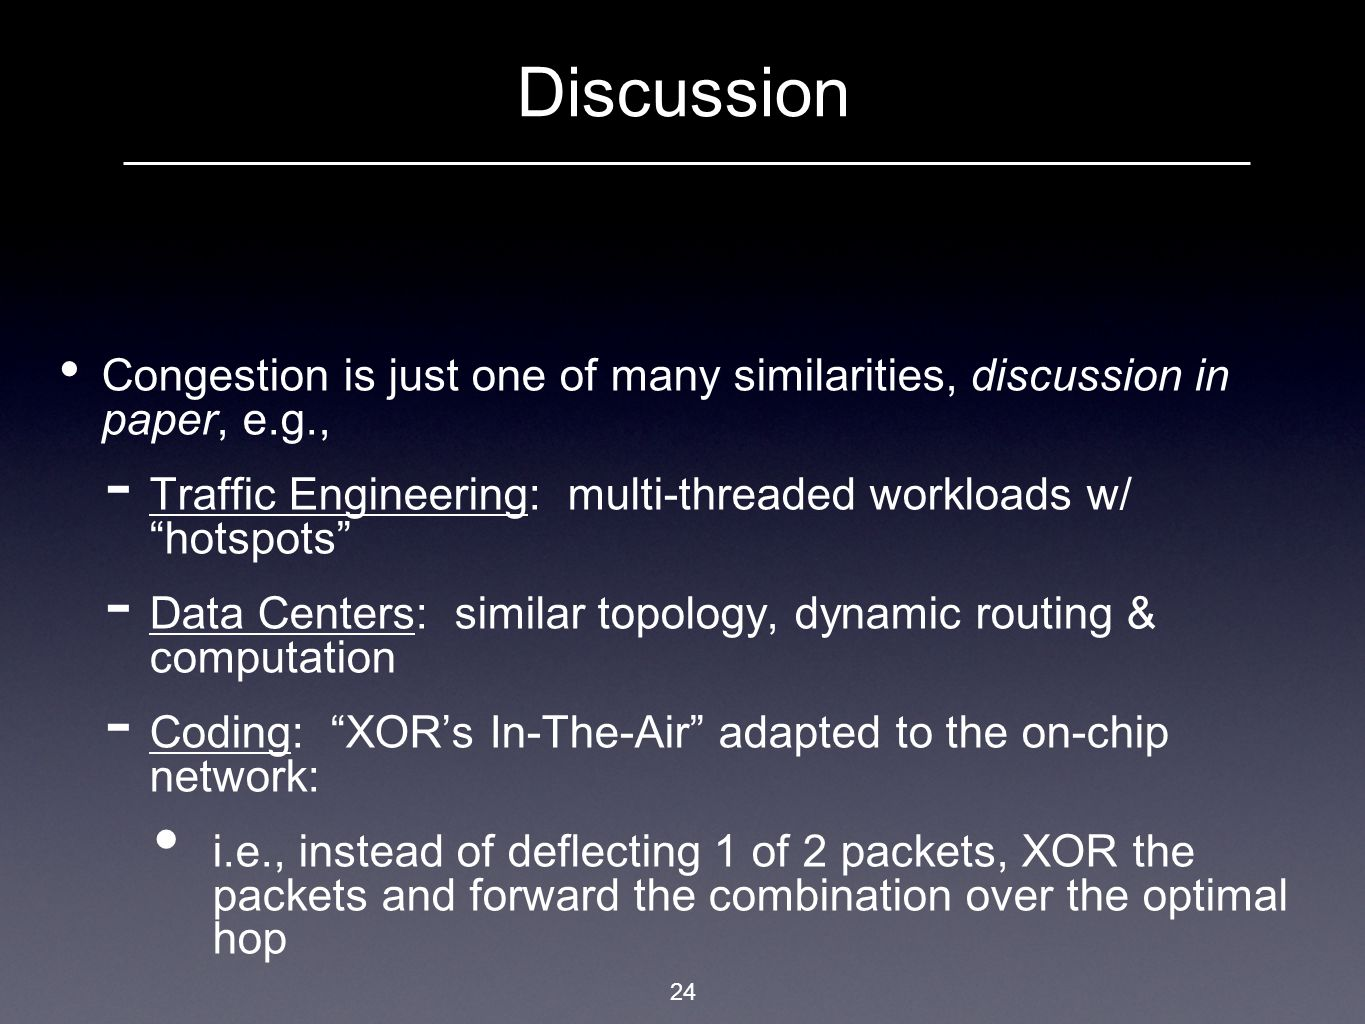 Discussion Congestion is just one of many similarities, discussion in paper, e.g.,  Traffic Engineering: multi-threaded workloads w/ hotspots  Data Centers: similar topology, dynamic routing & computation  Coding: XOR's In-The-Air adapted to the on-chip network: i.e., instead of deflecting 1 of 2 packets, XOR the packets and forward the combination over the optimal hop 24